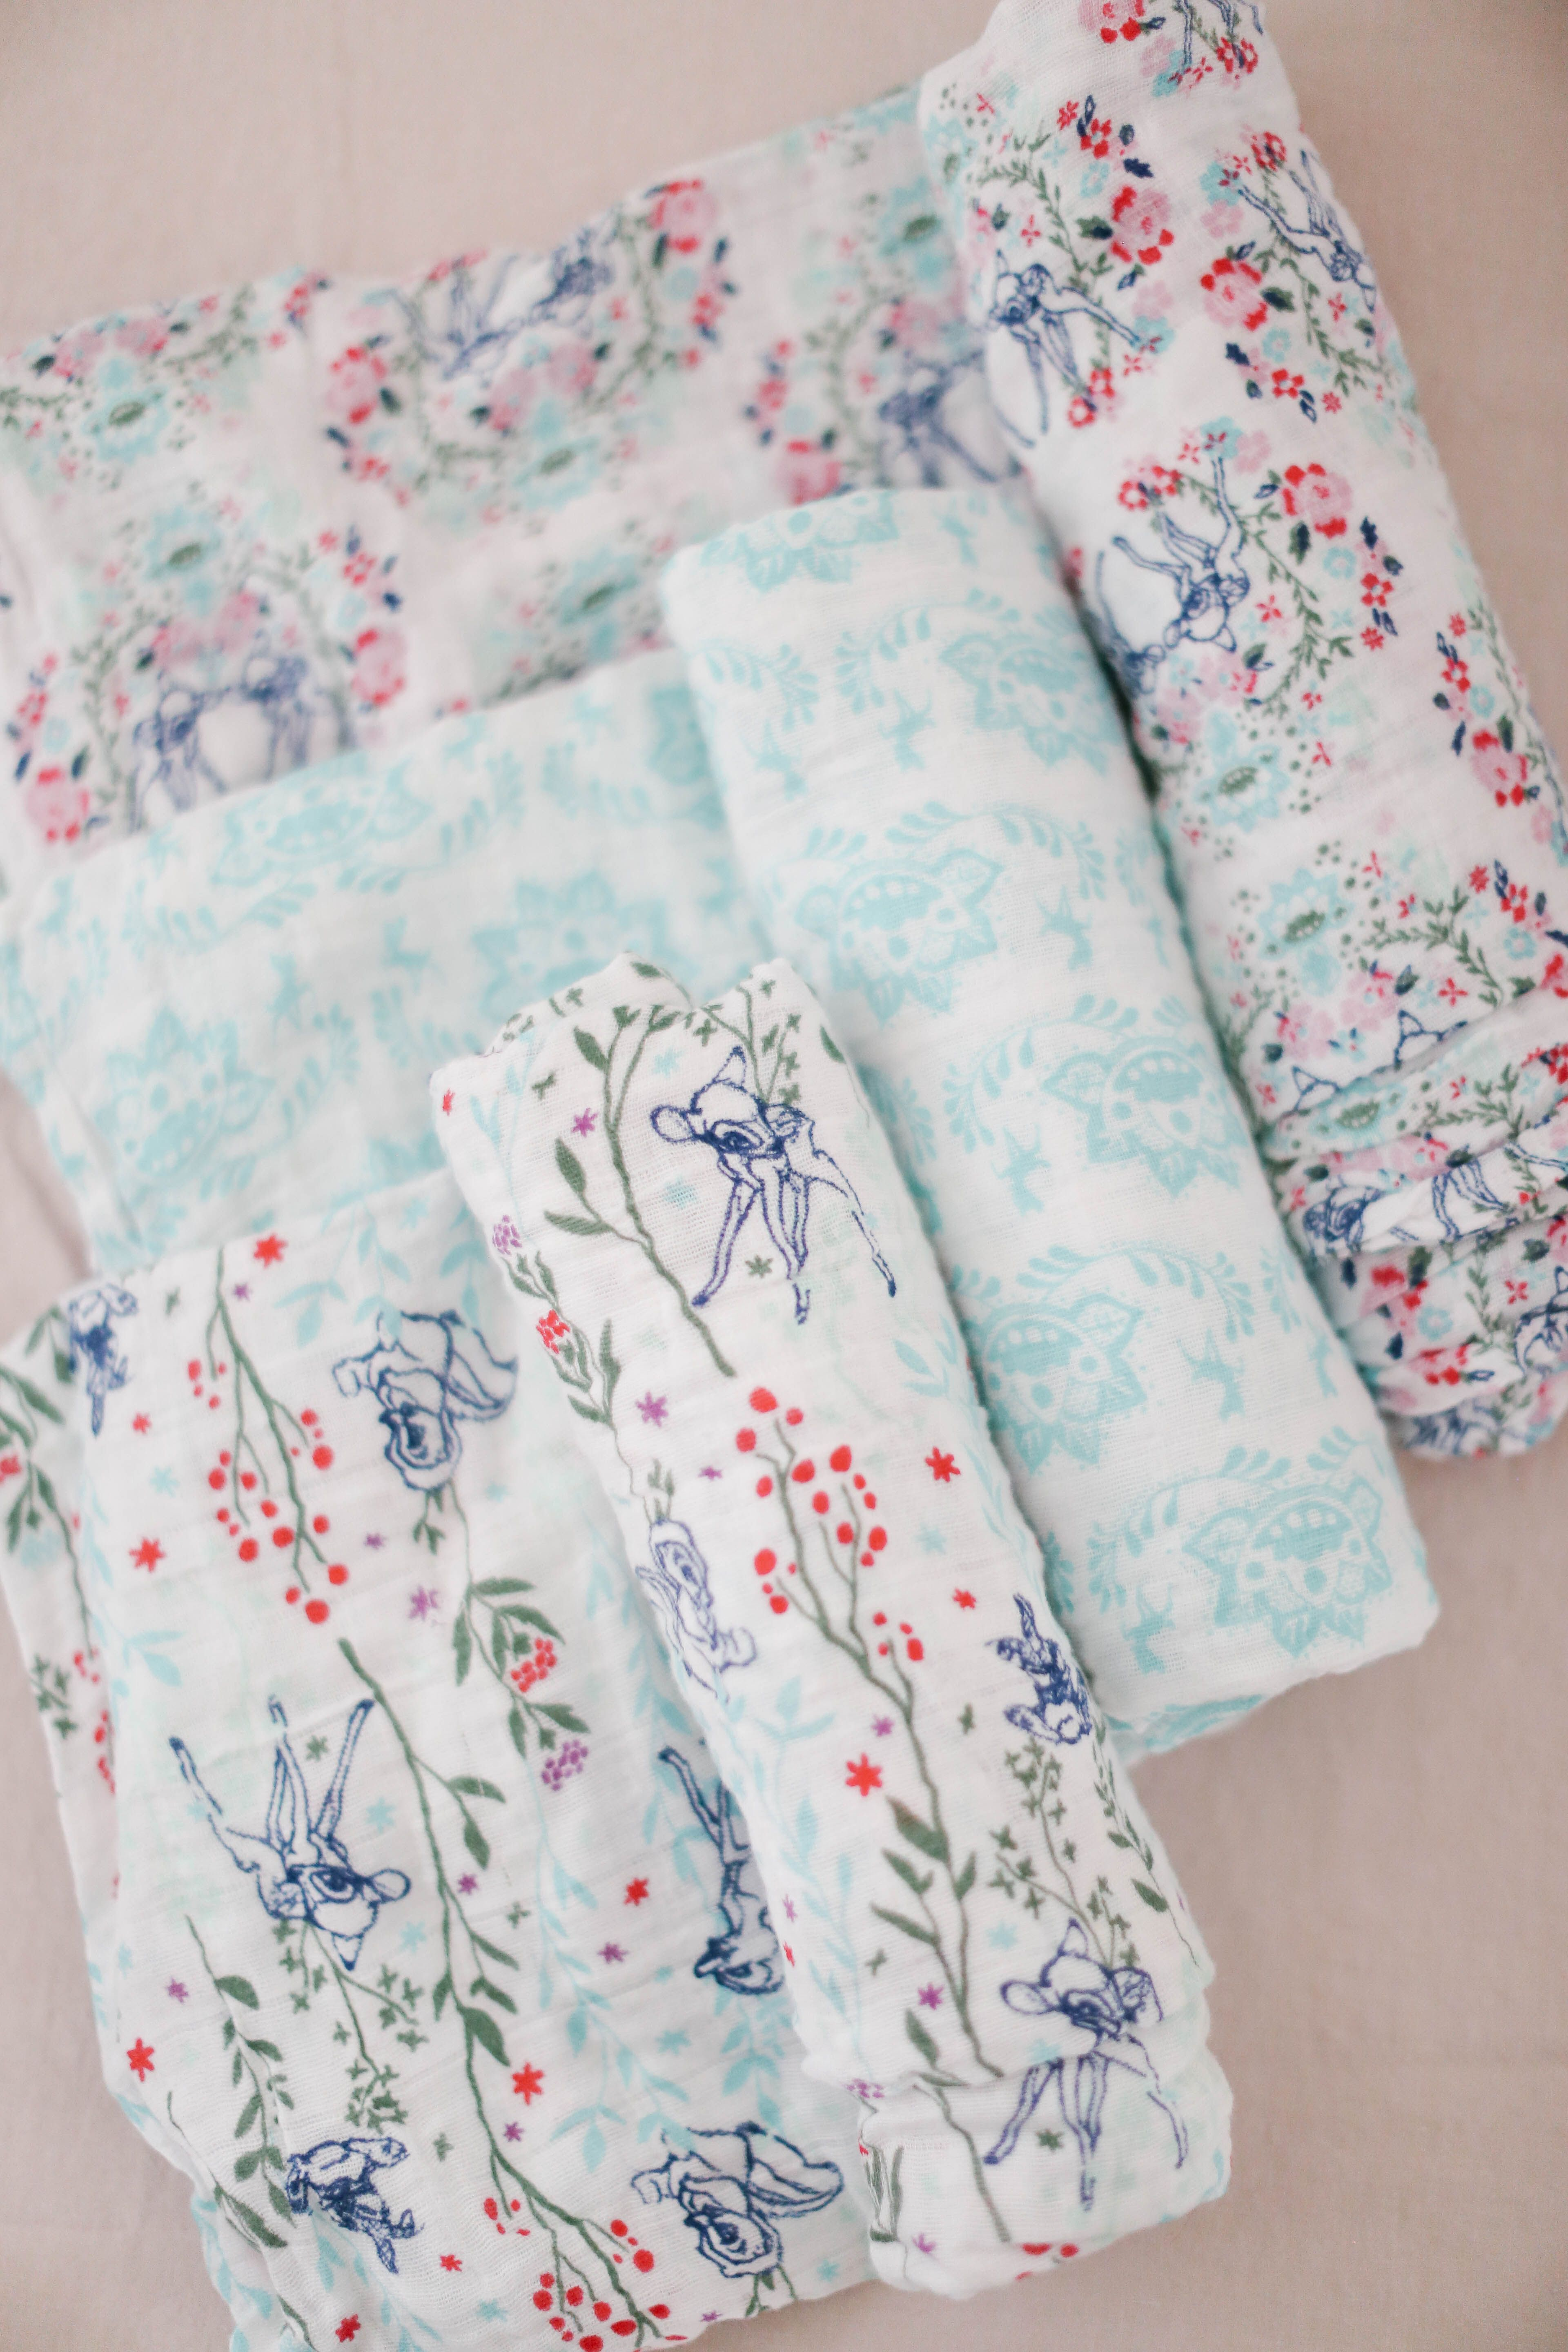 4432f51f394a Bambi Muslin Swaddle Blankets 4-Pack from aden® by aden + anais®. A lovely  shower gift. Whimsical and beautiful character art inspired by a variety of  ...